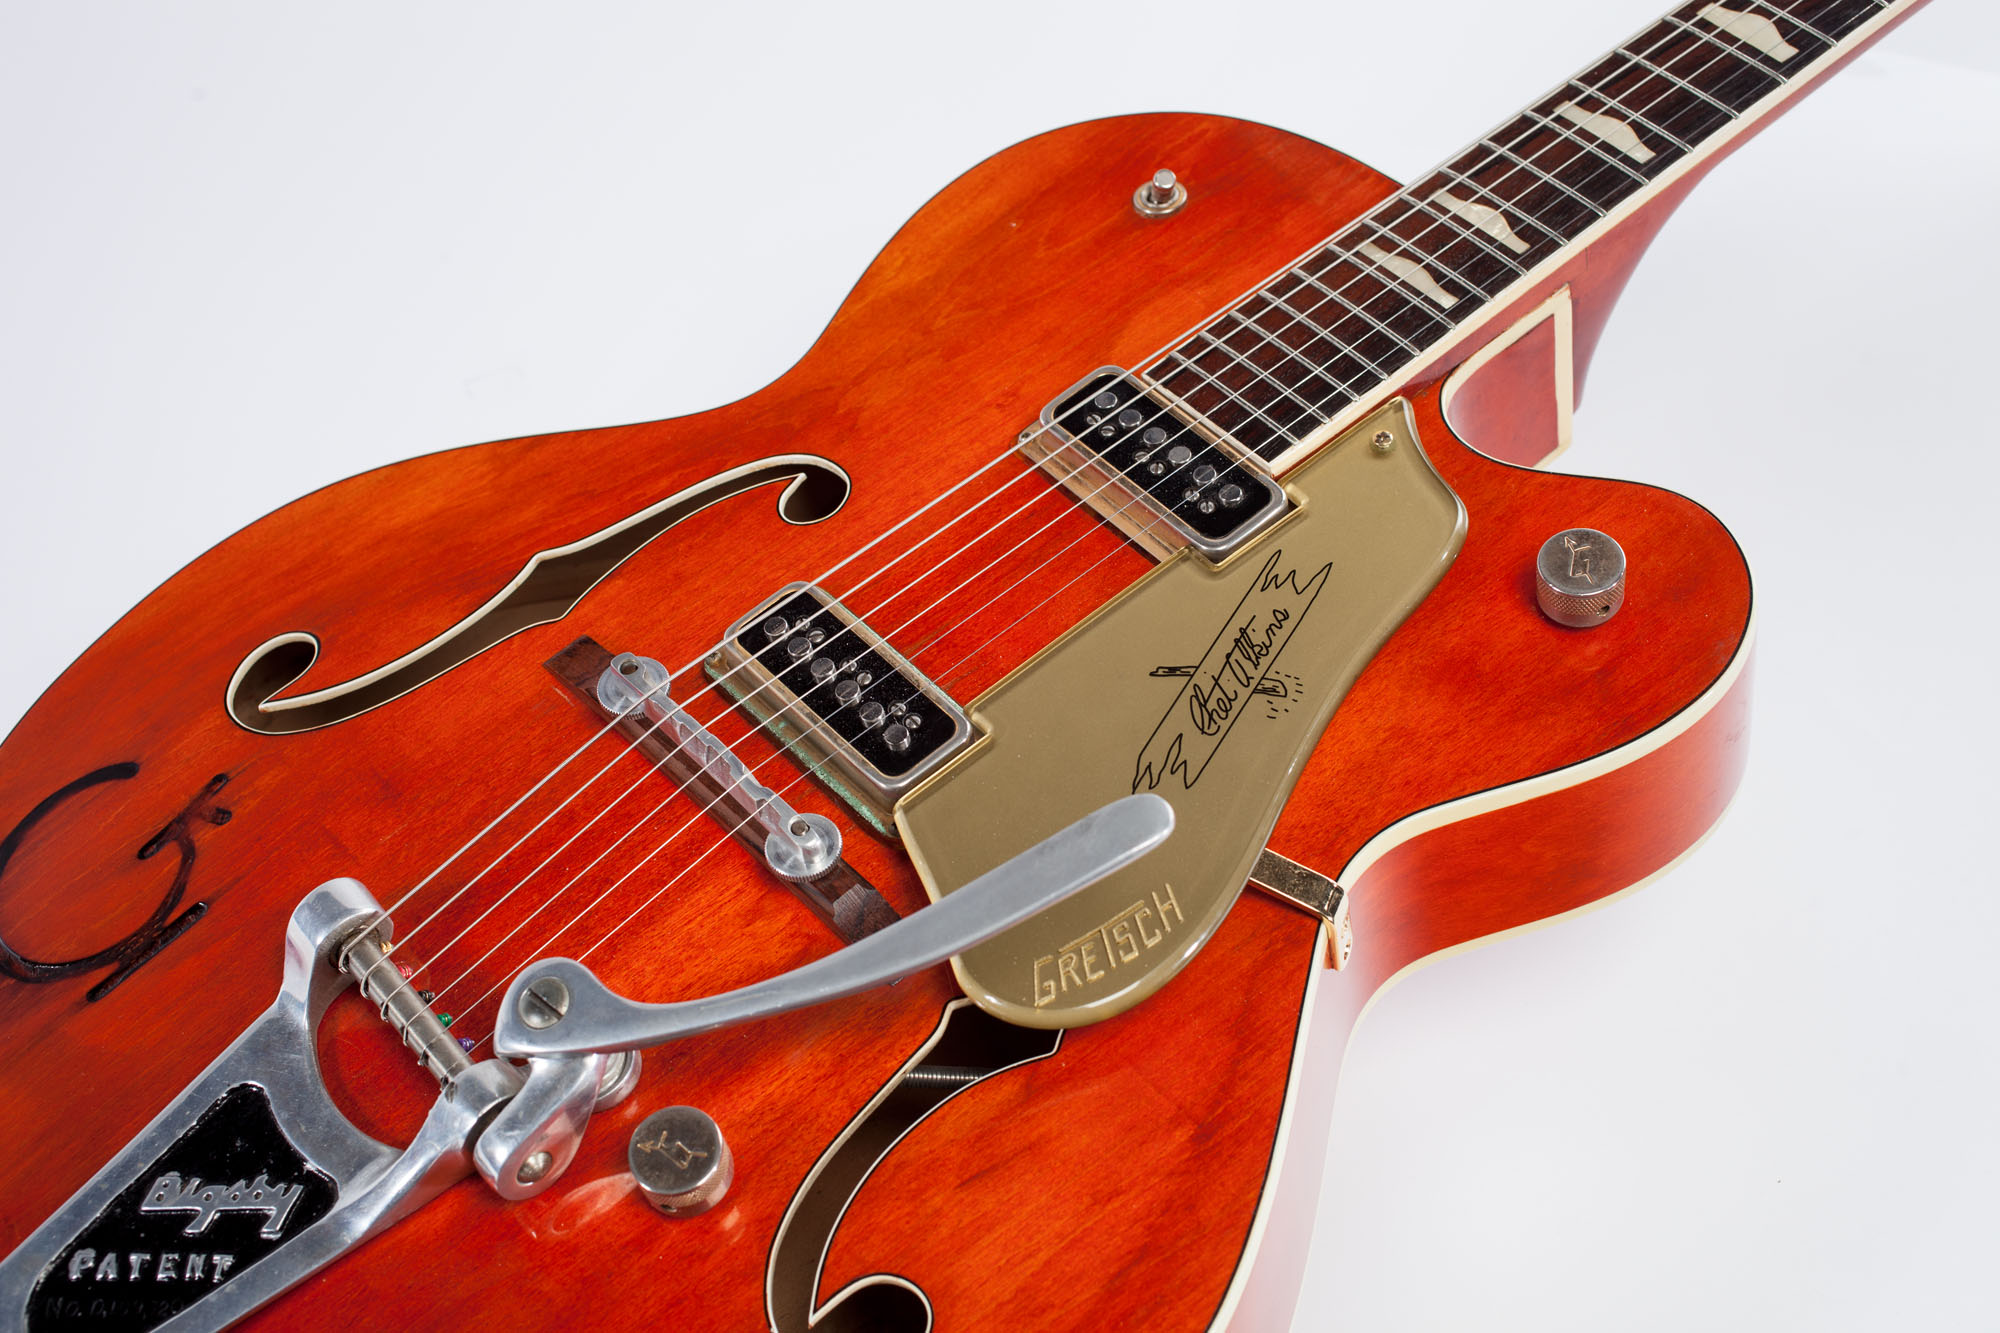 1957 gretsch 6120 chet atkins red amber guitars archtop electric acoustic jet city guitars. Black Bedroom Furniture Sets. Home Design Ideas